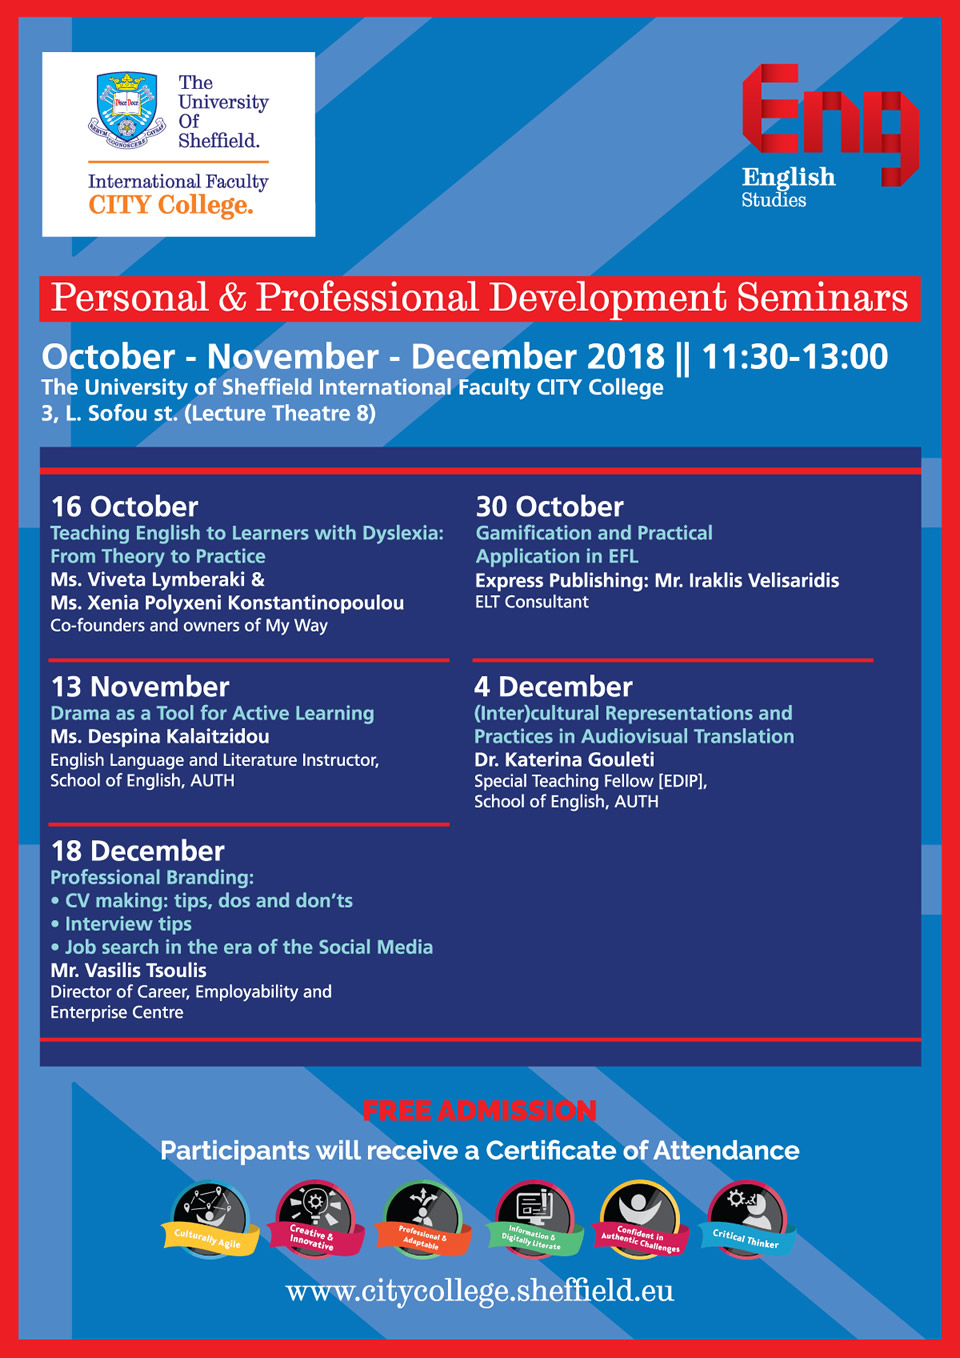 Personal & Professional Development Seminars 2018 by the University of Sheffield International Faculty's English Studies Dept